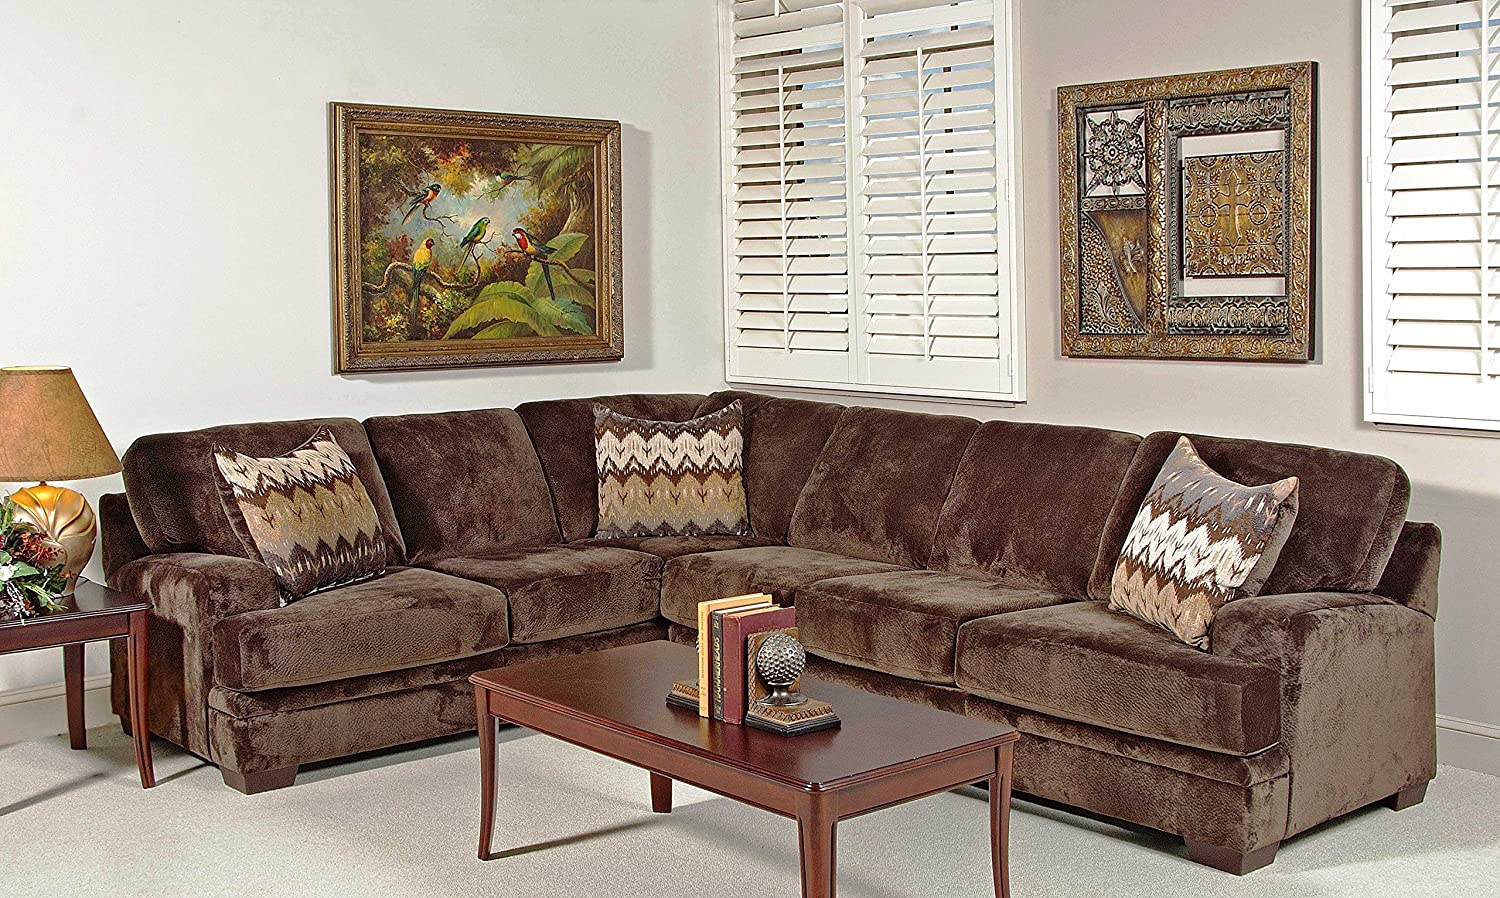 Chelsea Home Furniture Nina 2-Piece Sectional - Olympian Chocolate with Padma Otter Pillows